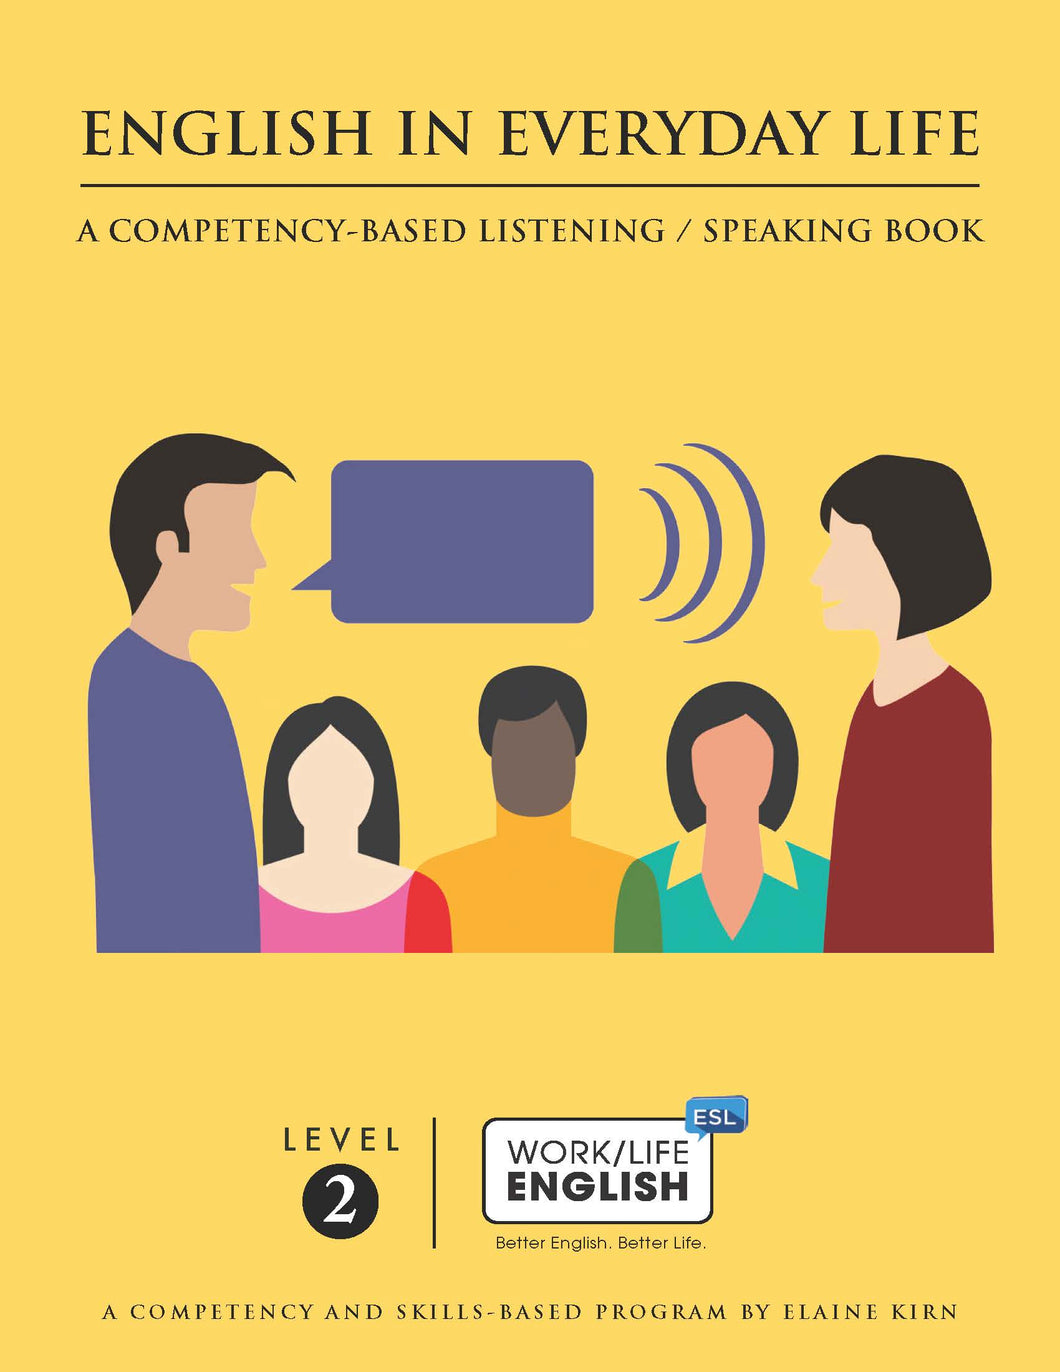 G.2.LS.S Work/Life English - Listening and Speaking - Level 2 - Student